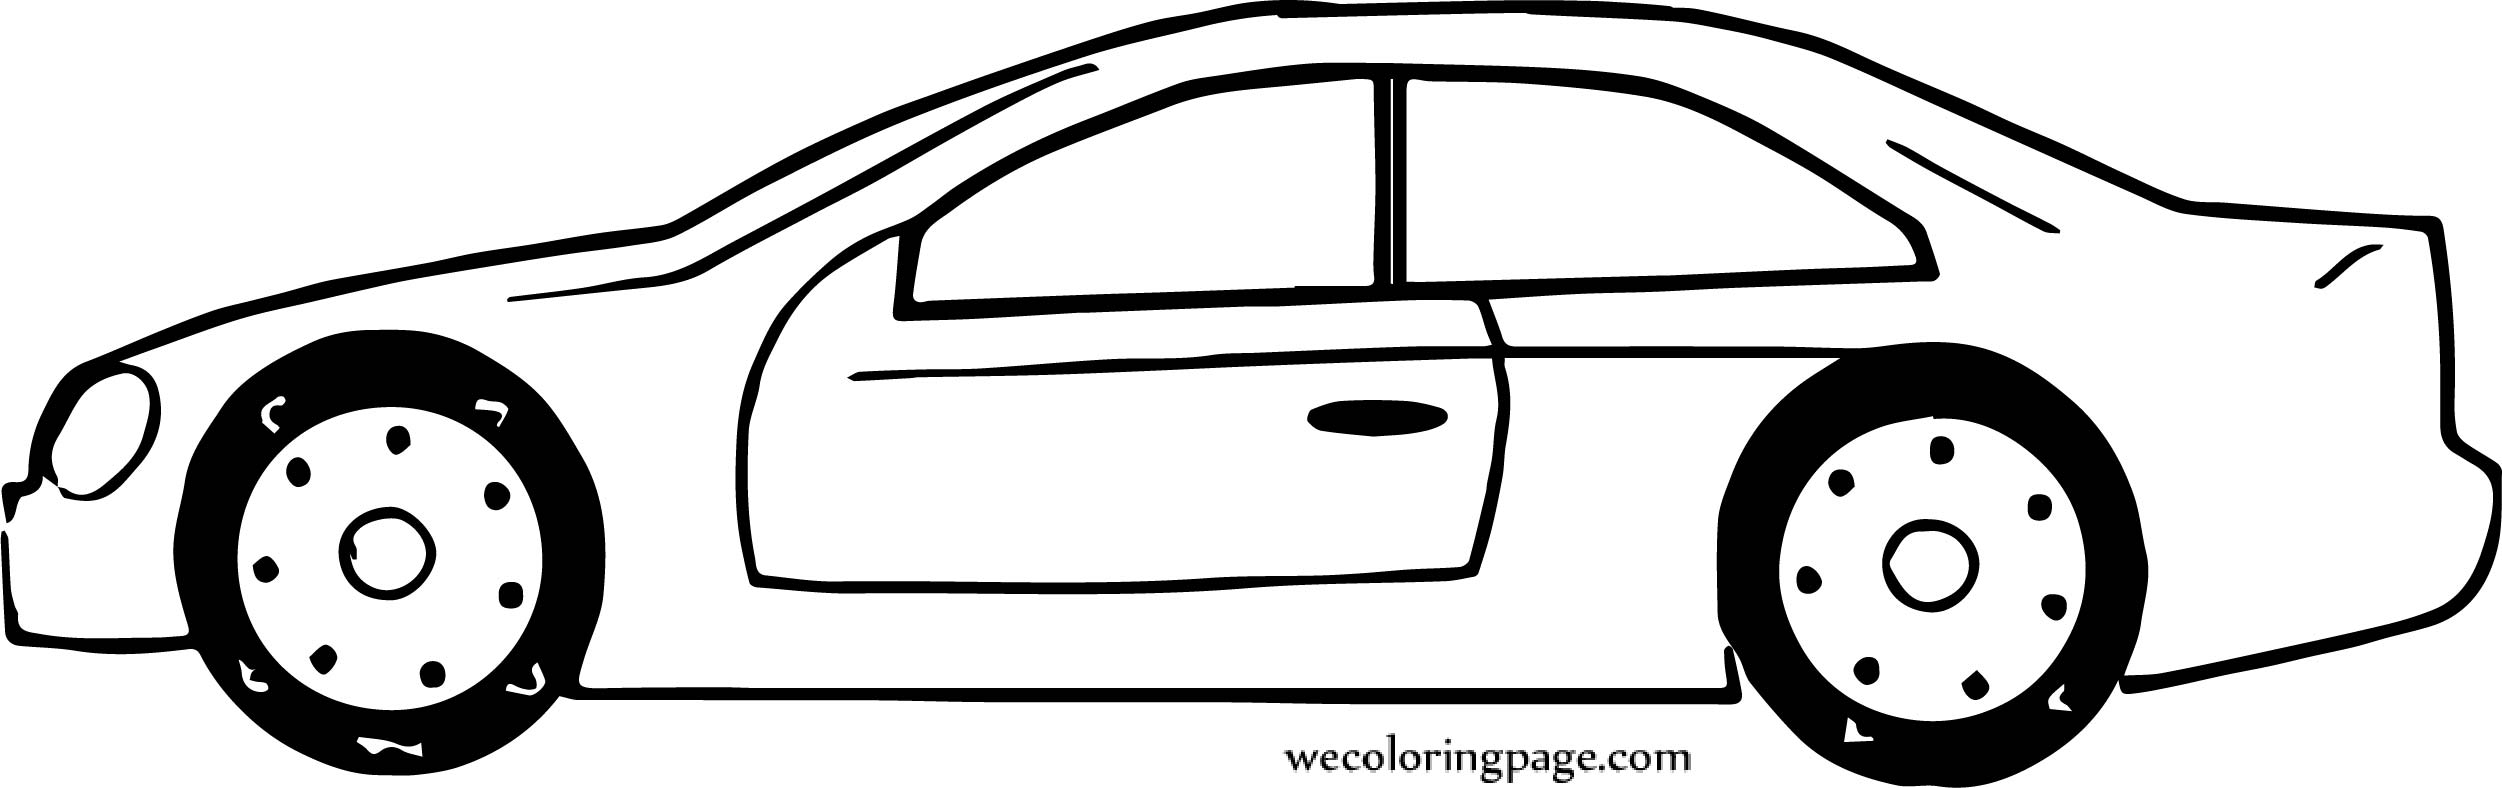 Car Wecoloringpage Coloring Page 111